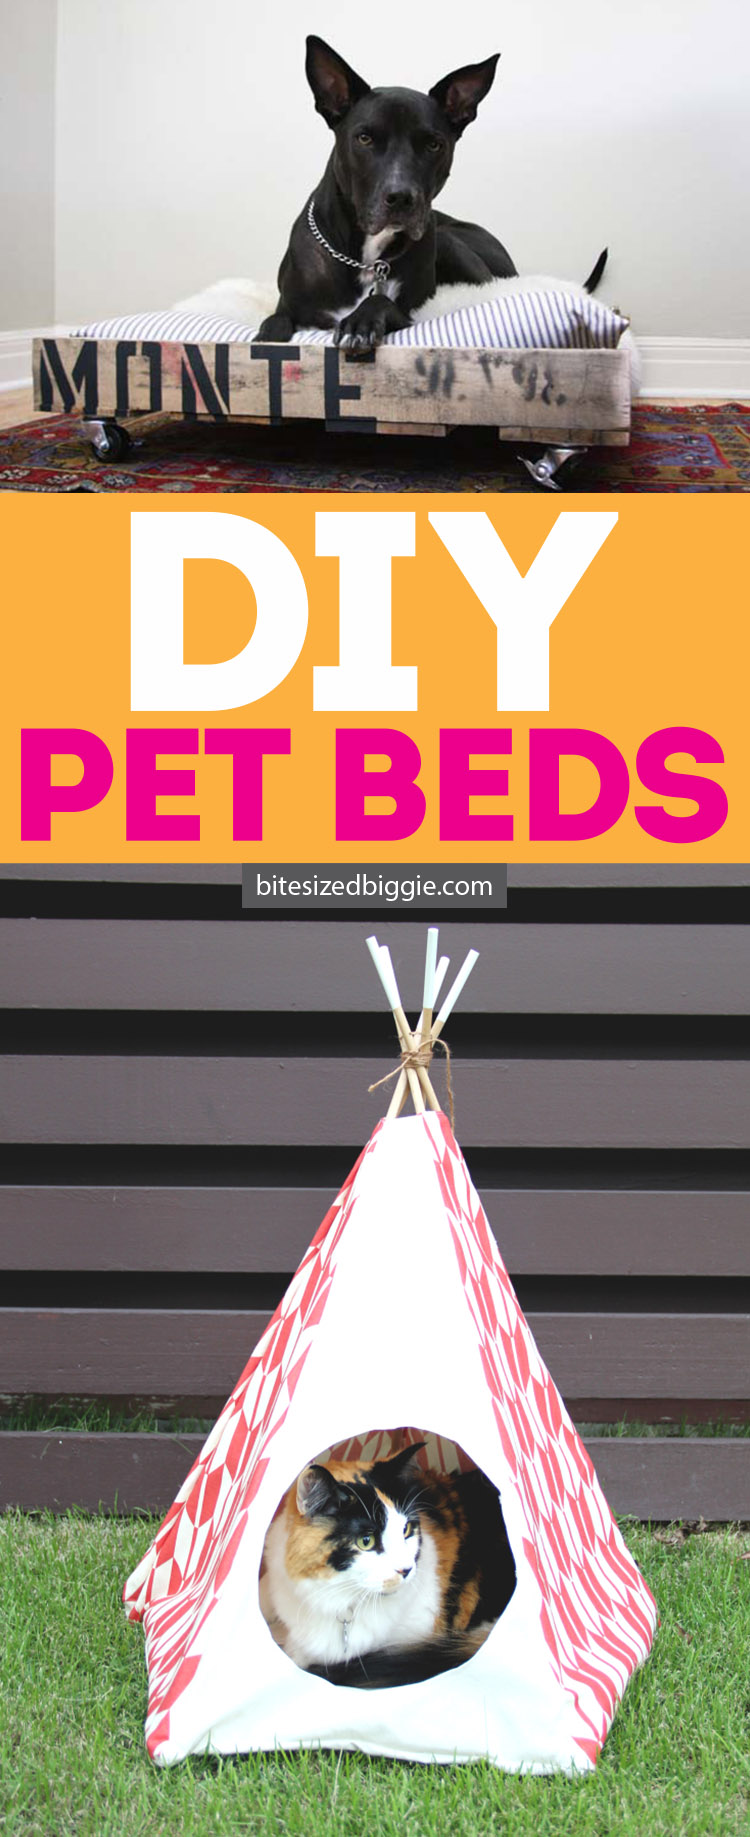 DIY cat and dog bed ideas - So many fun ones in this post!